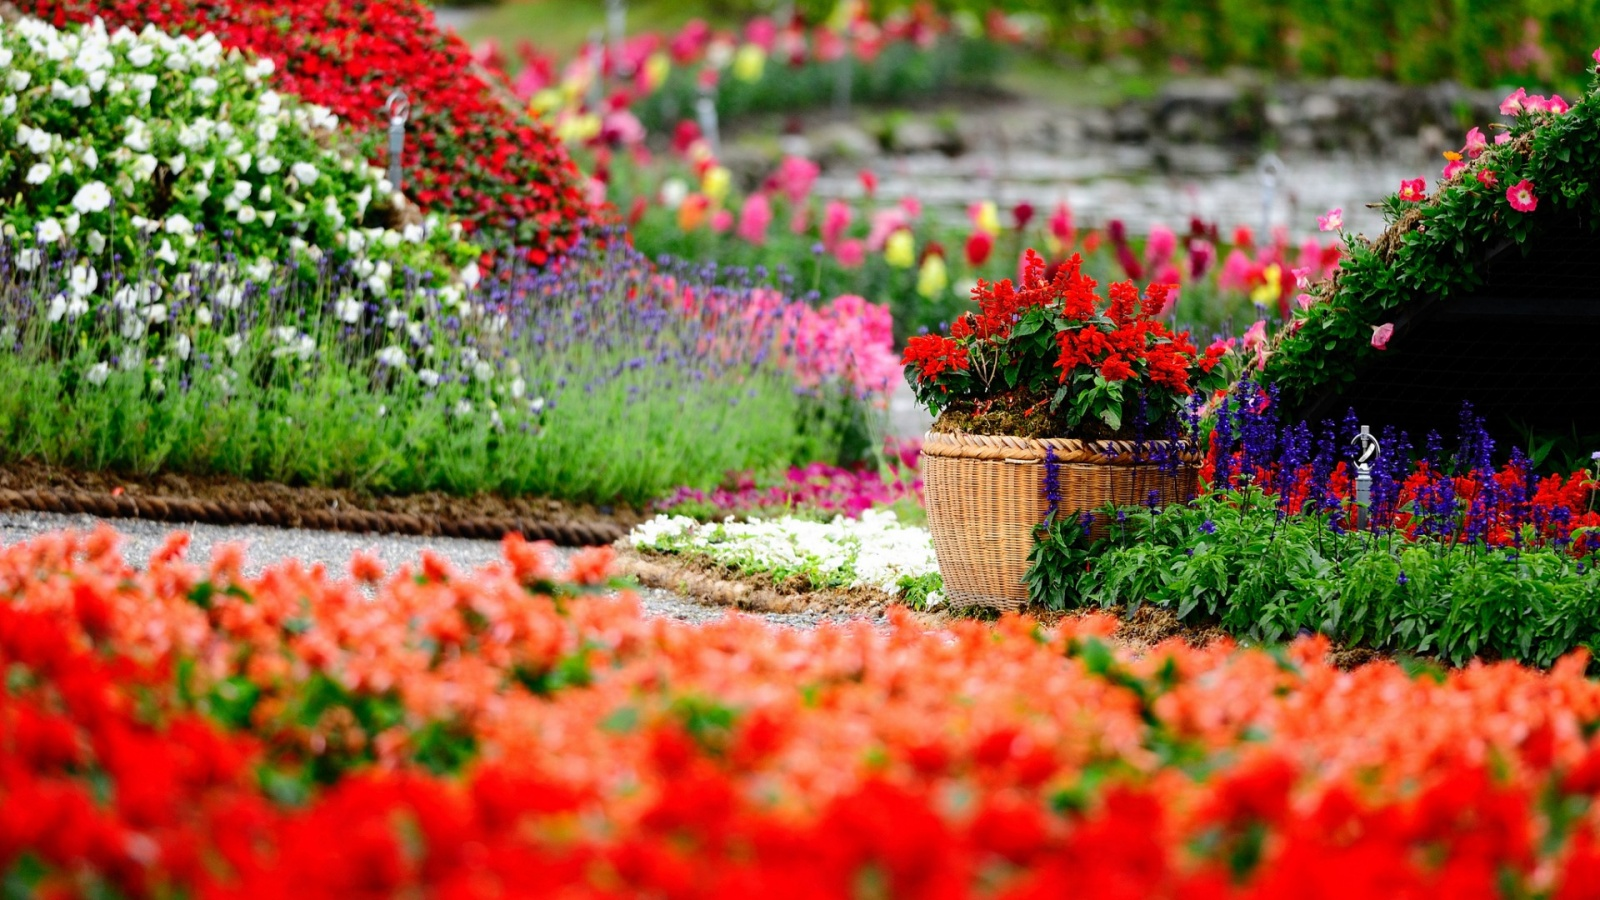 Amazing flower garden wallpapers 1600x900 557108 for Amazing flower gardens